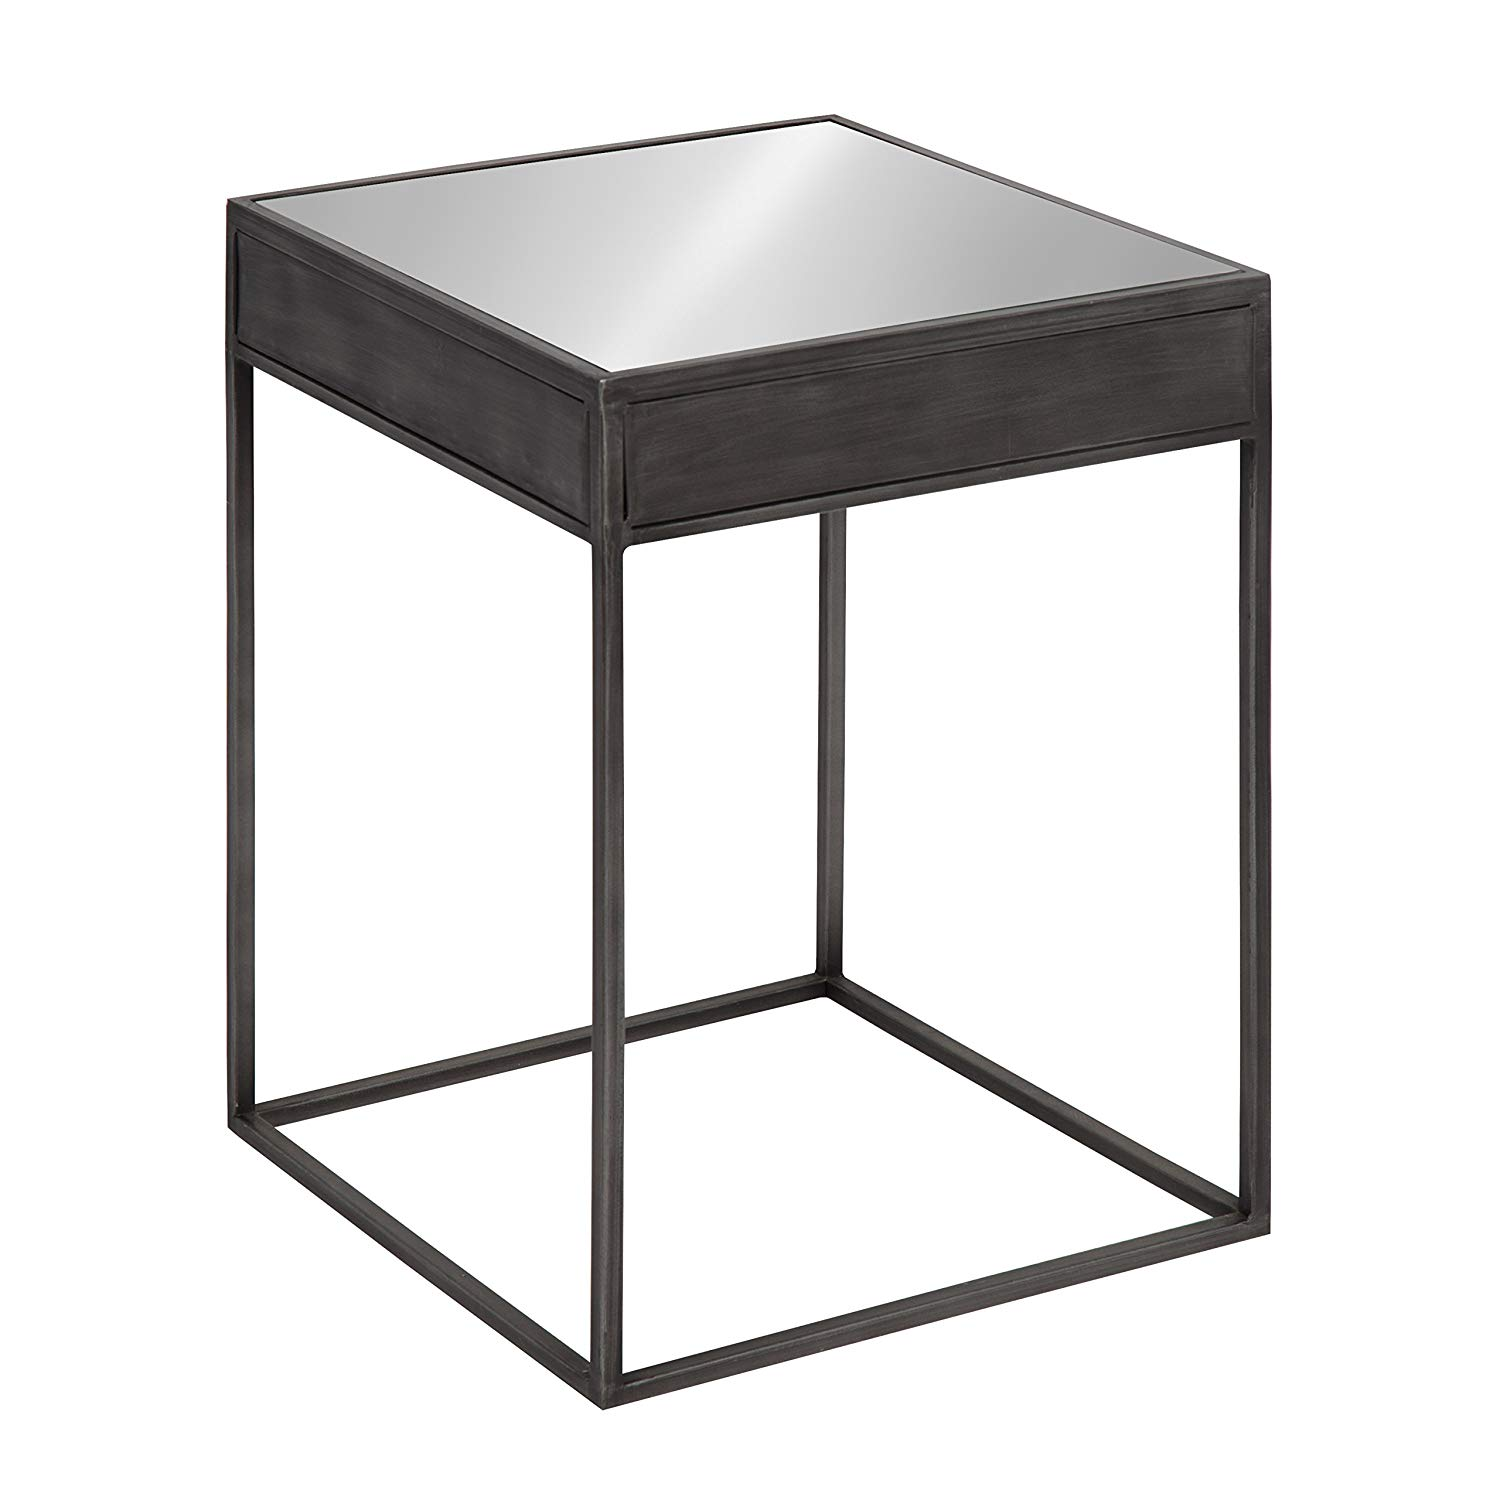 small metal accent table find tall square get quotations kate and laurel aleksand industrial modern mirror side end metallic pink cocktails charcoal grey coffee diy pottery barn